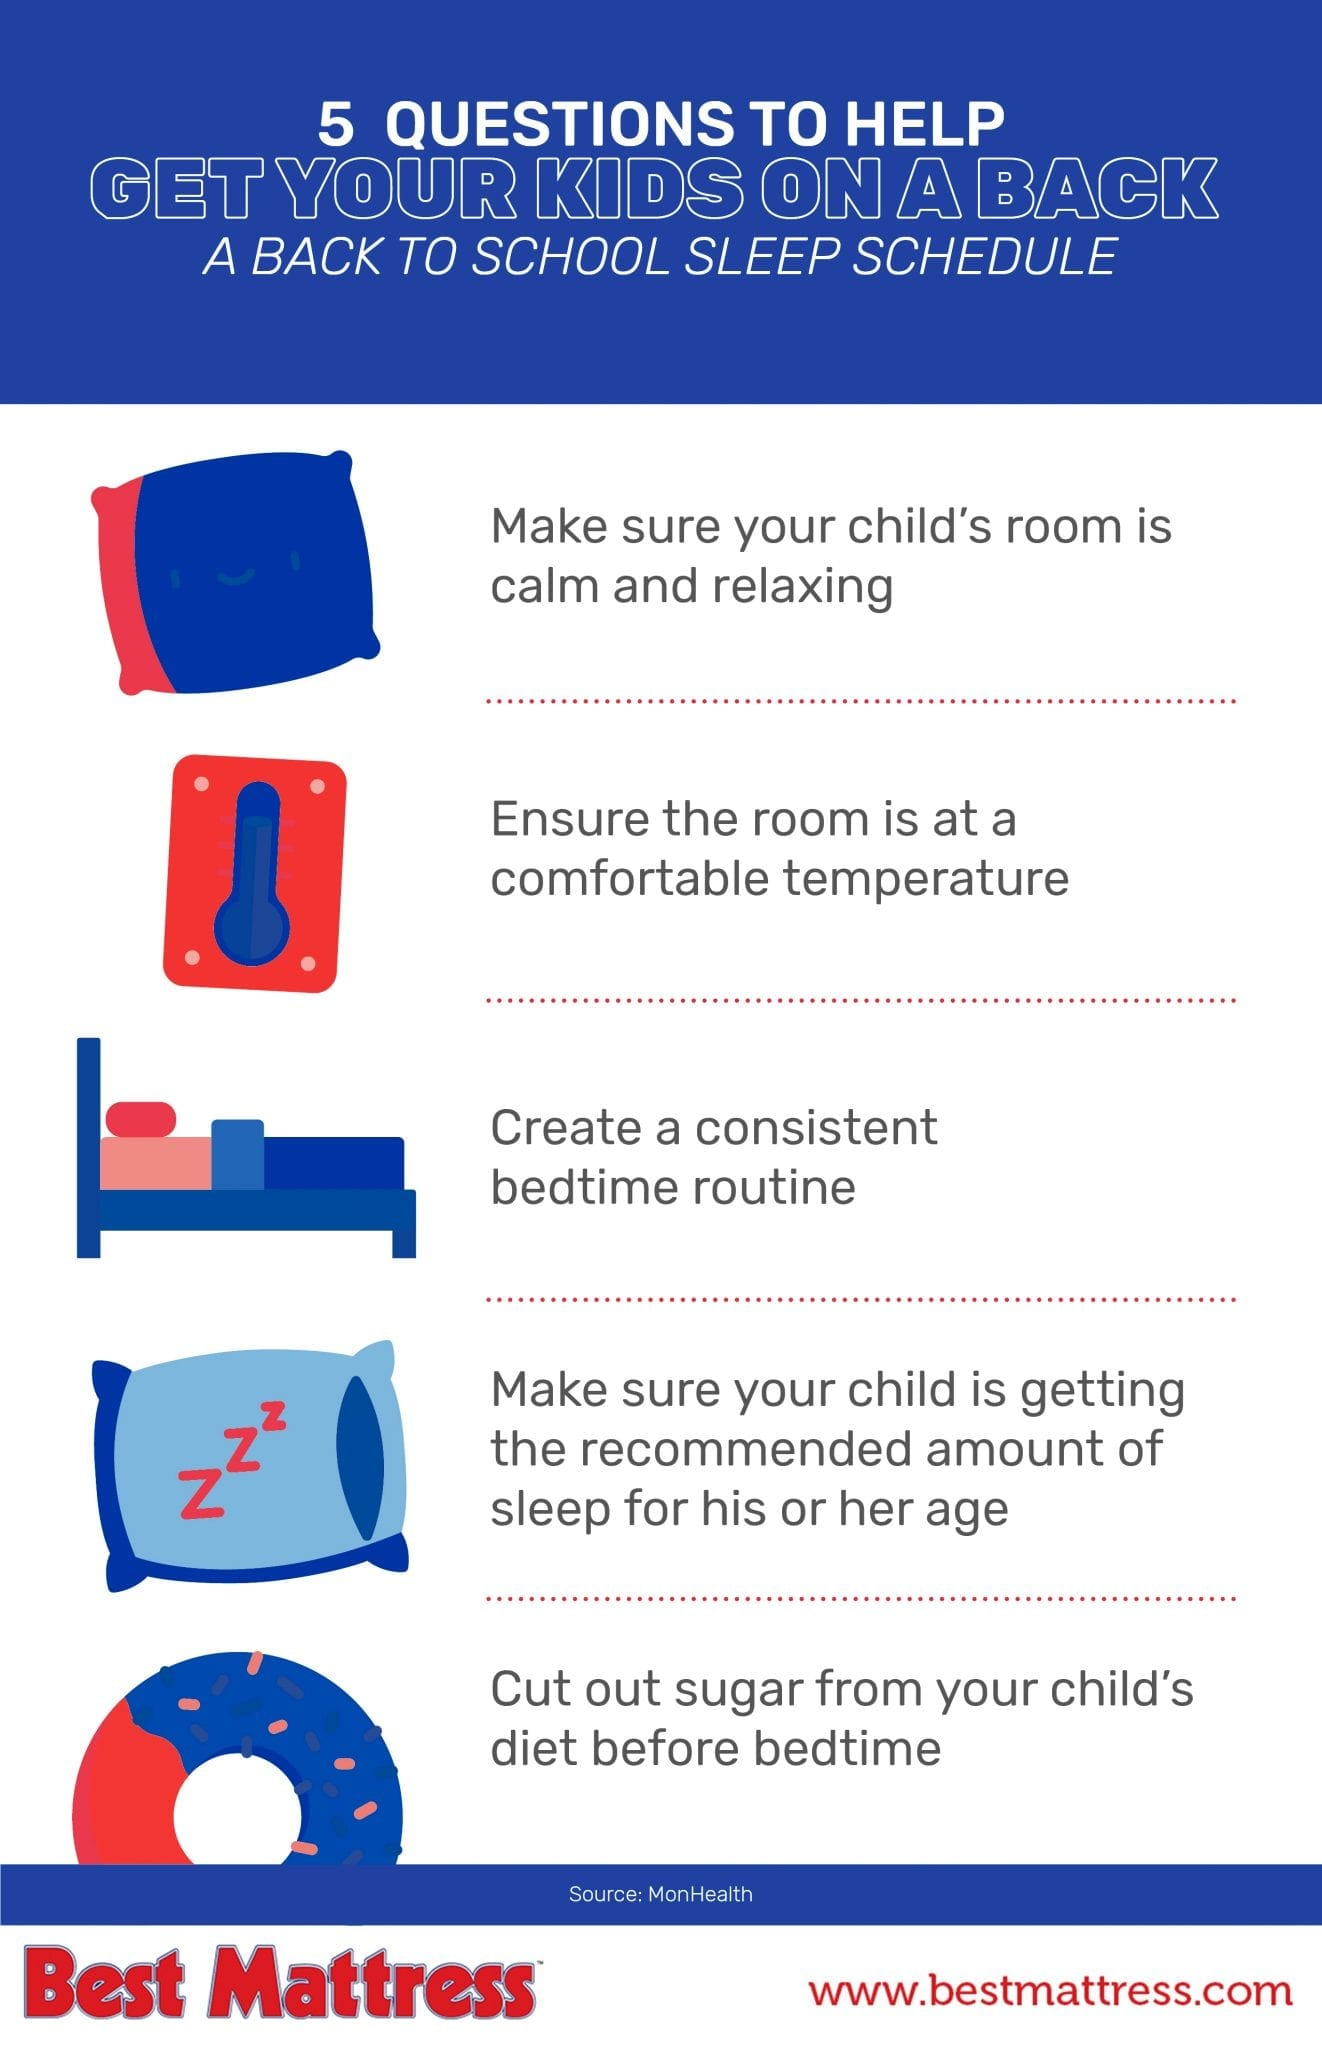 5 Questions To Help Get Your Kids On A Back To Back School Sleep Schedule From Best Mattress in Las Vegas & St. George, Utah